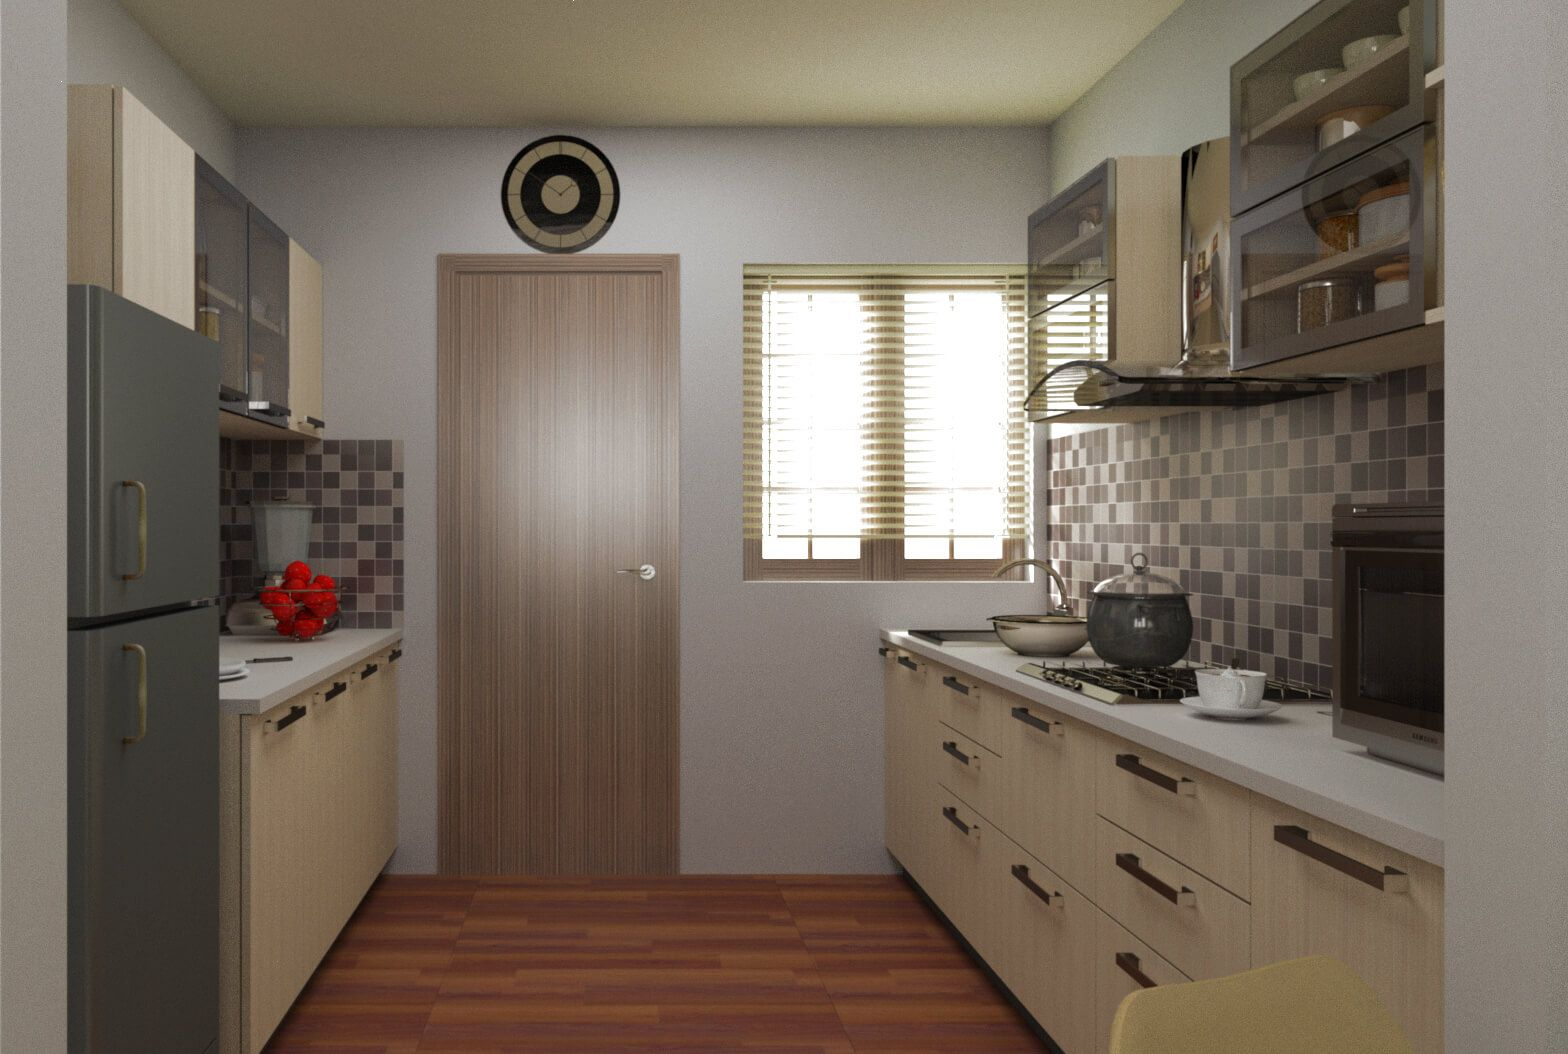 Parallel Modular Kitchen Designs India - Kitchen | Kitchen ...